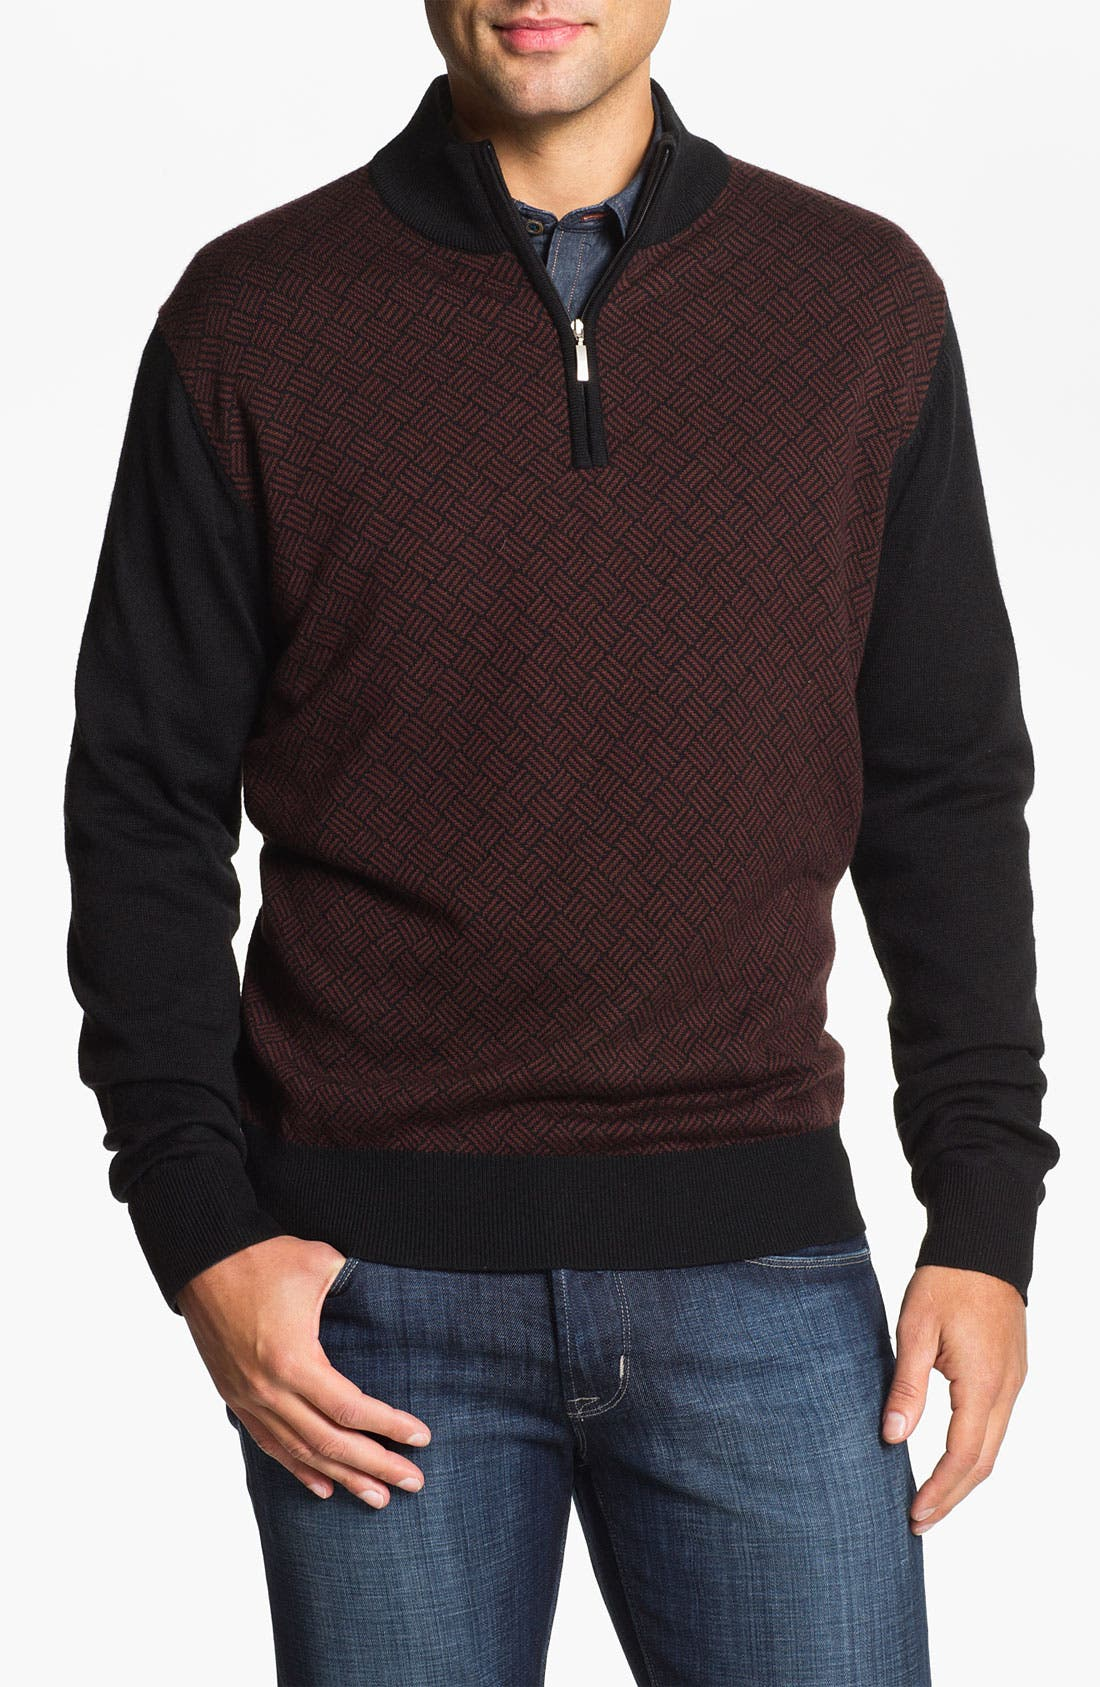 Main Image - Toscano Quarter Zip Wool Blend Sweater